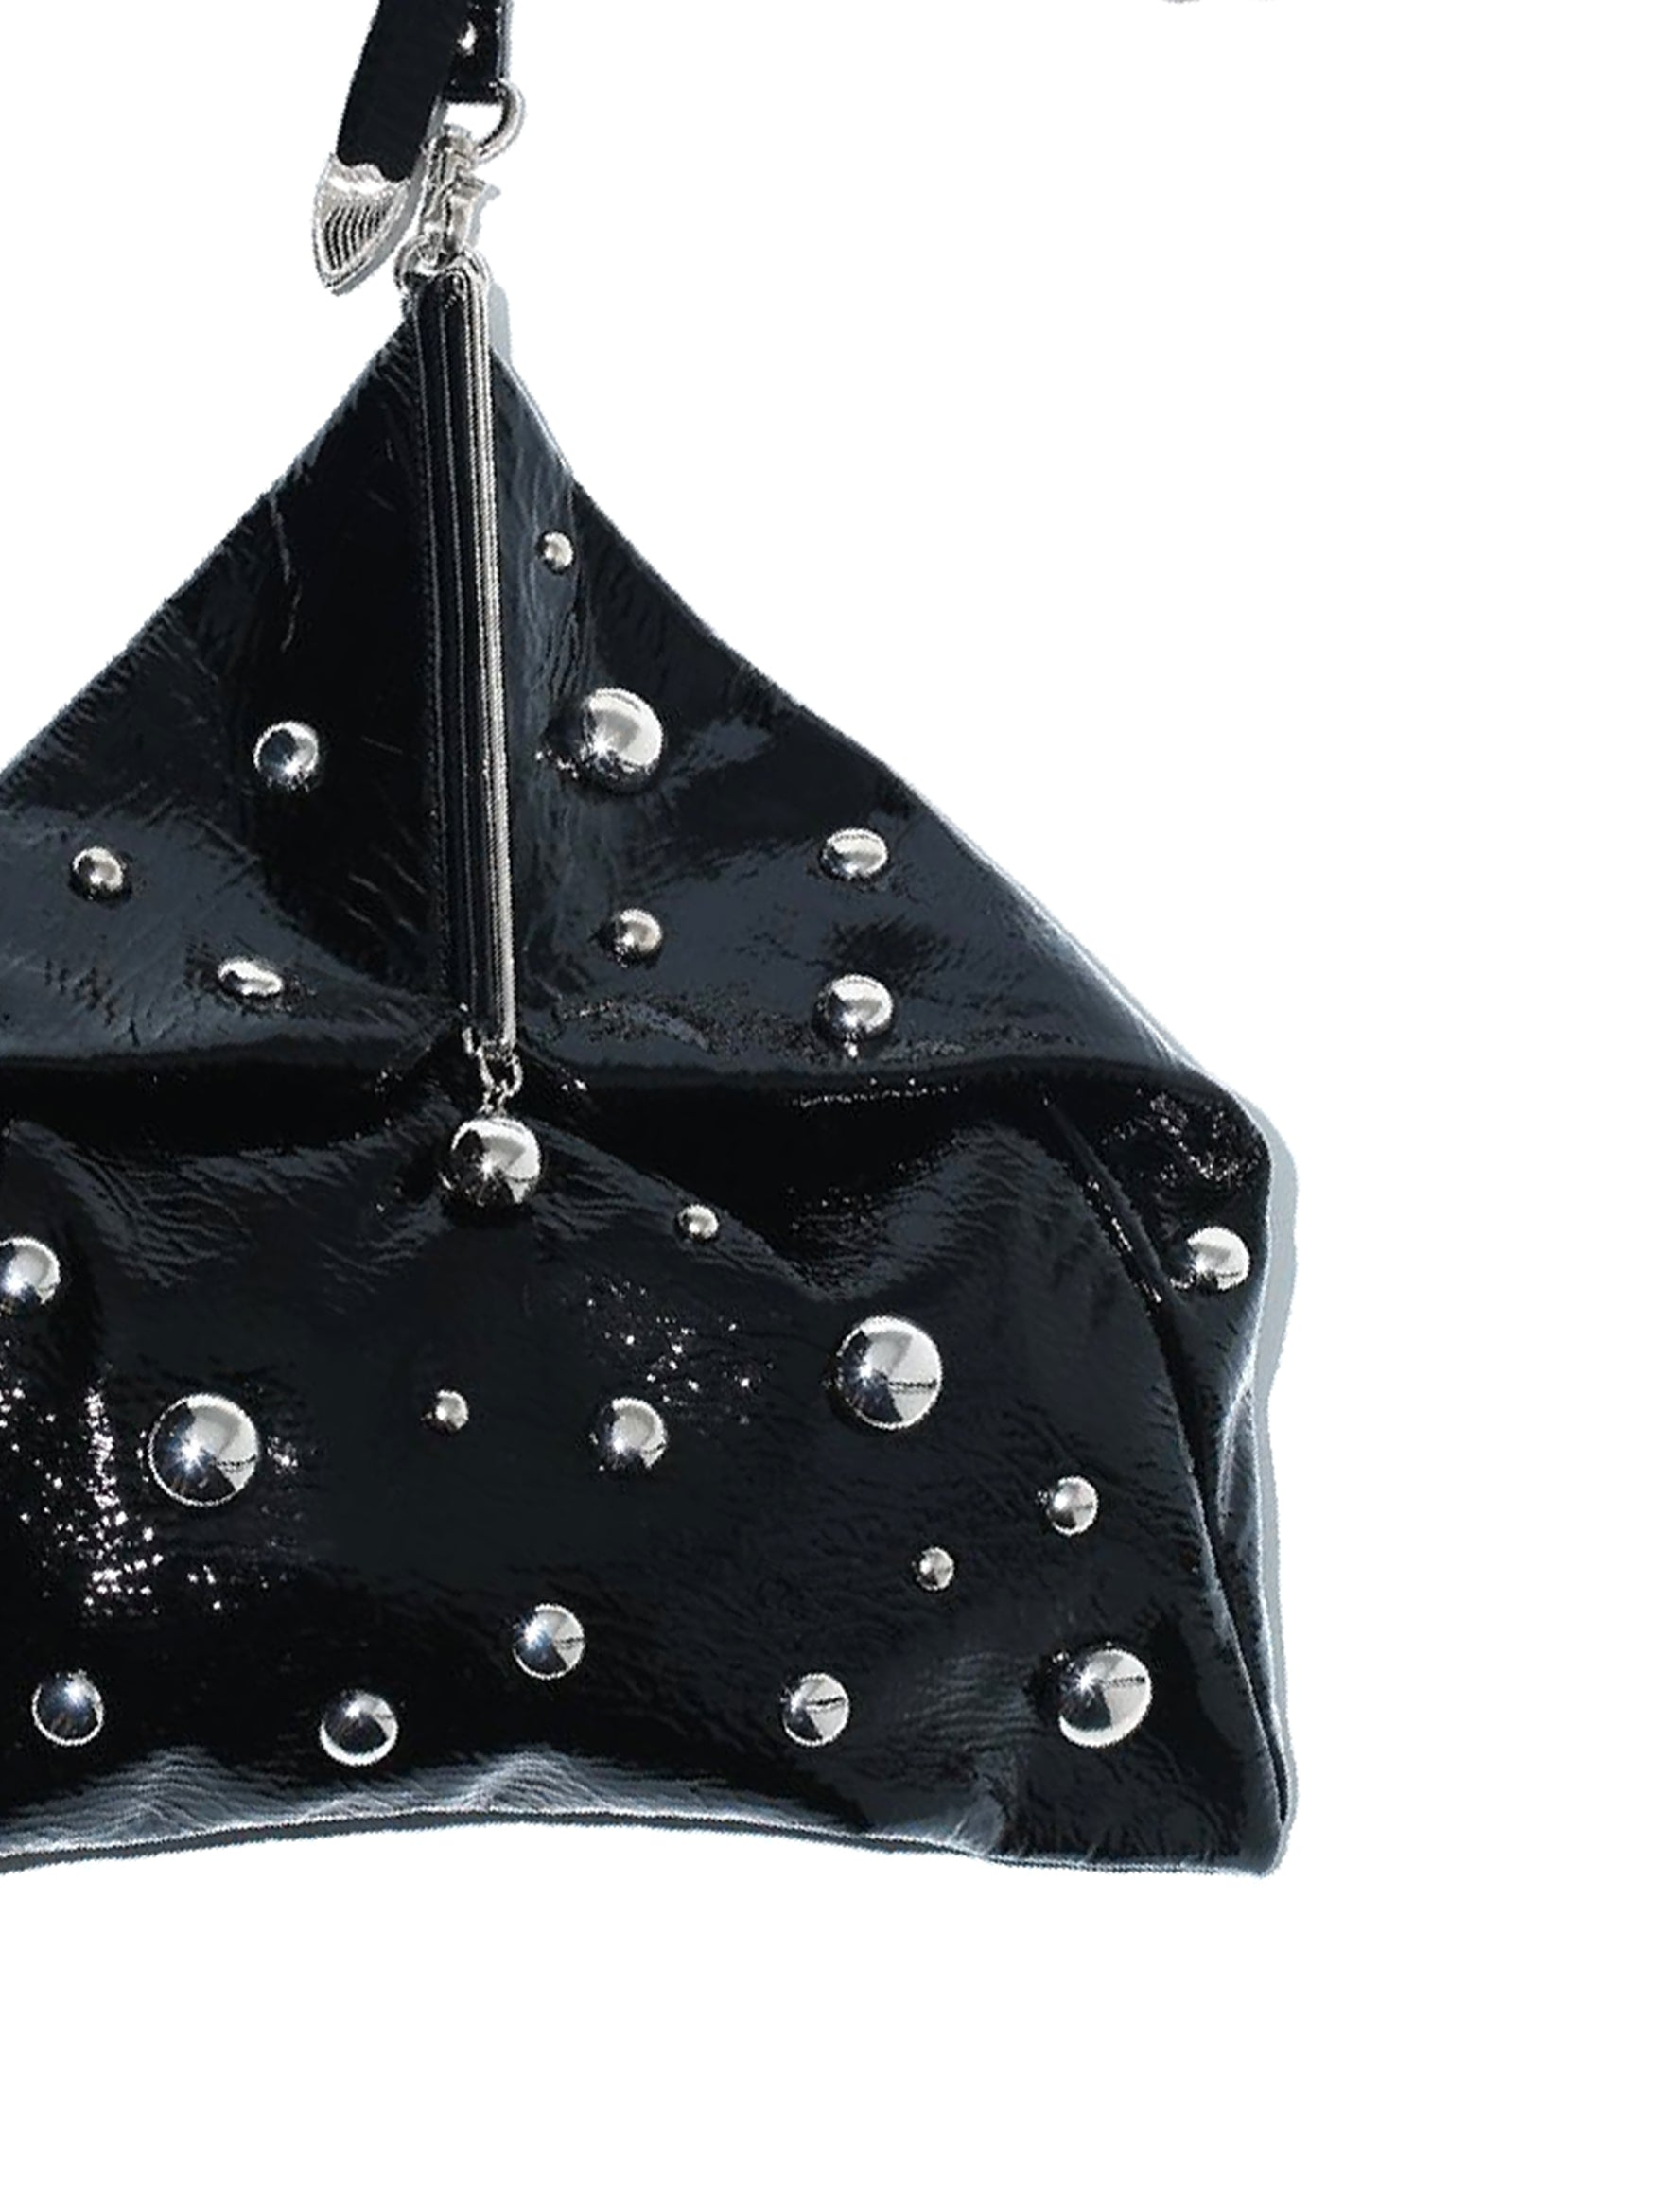 Toga Pulla Black Metal Bag